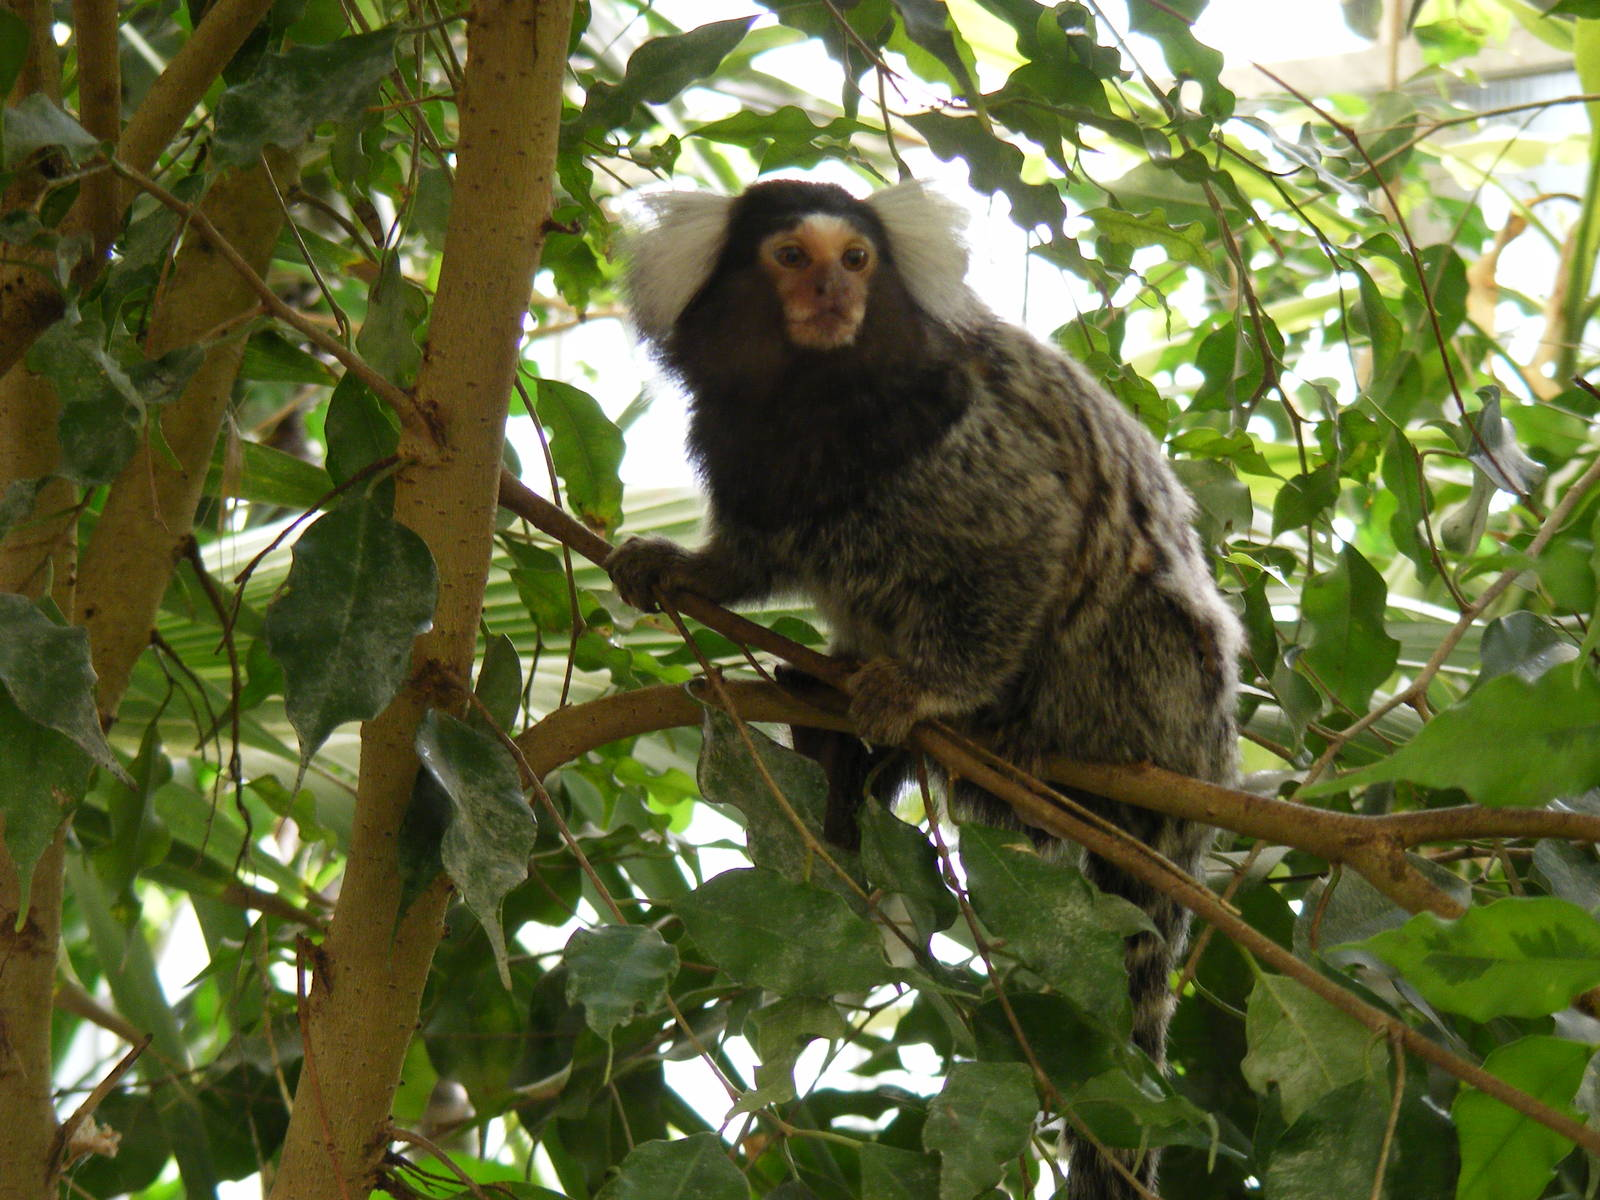 Monkey Wallpaper marmoset monkey hd desktop wallpapers | 7wallpapers